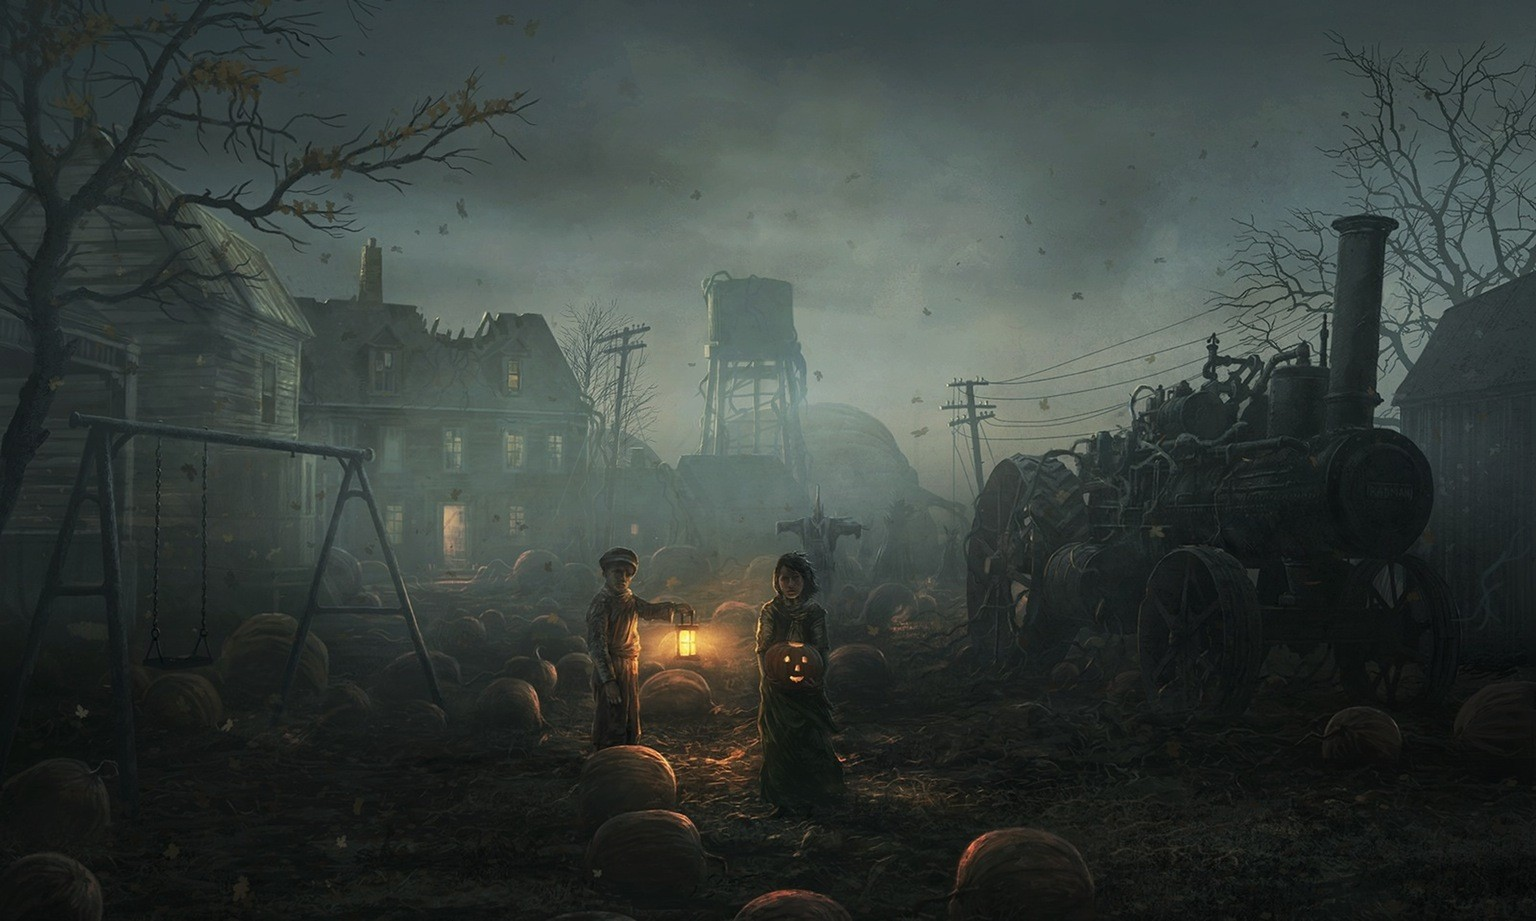 Scary 3d Wallpaper Halloween Spooky Wallpapers Hd Desktop And Mobile